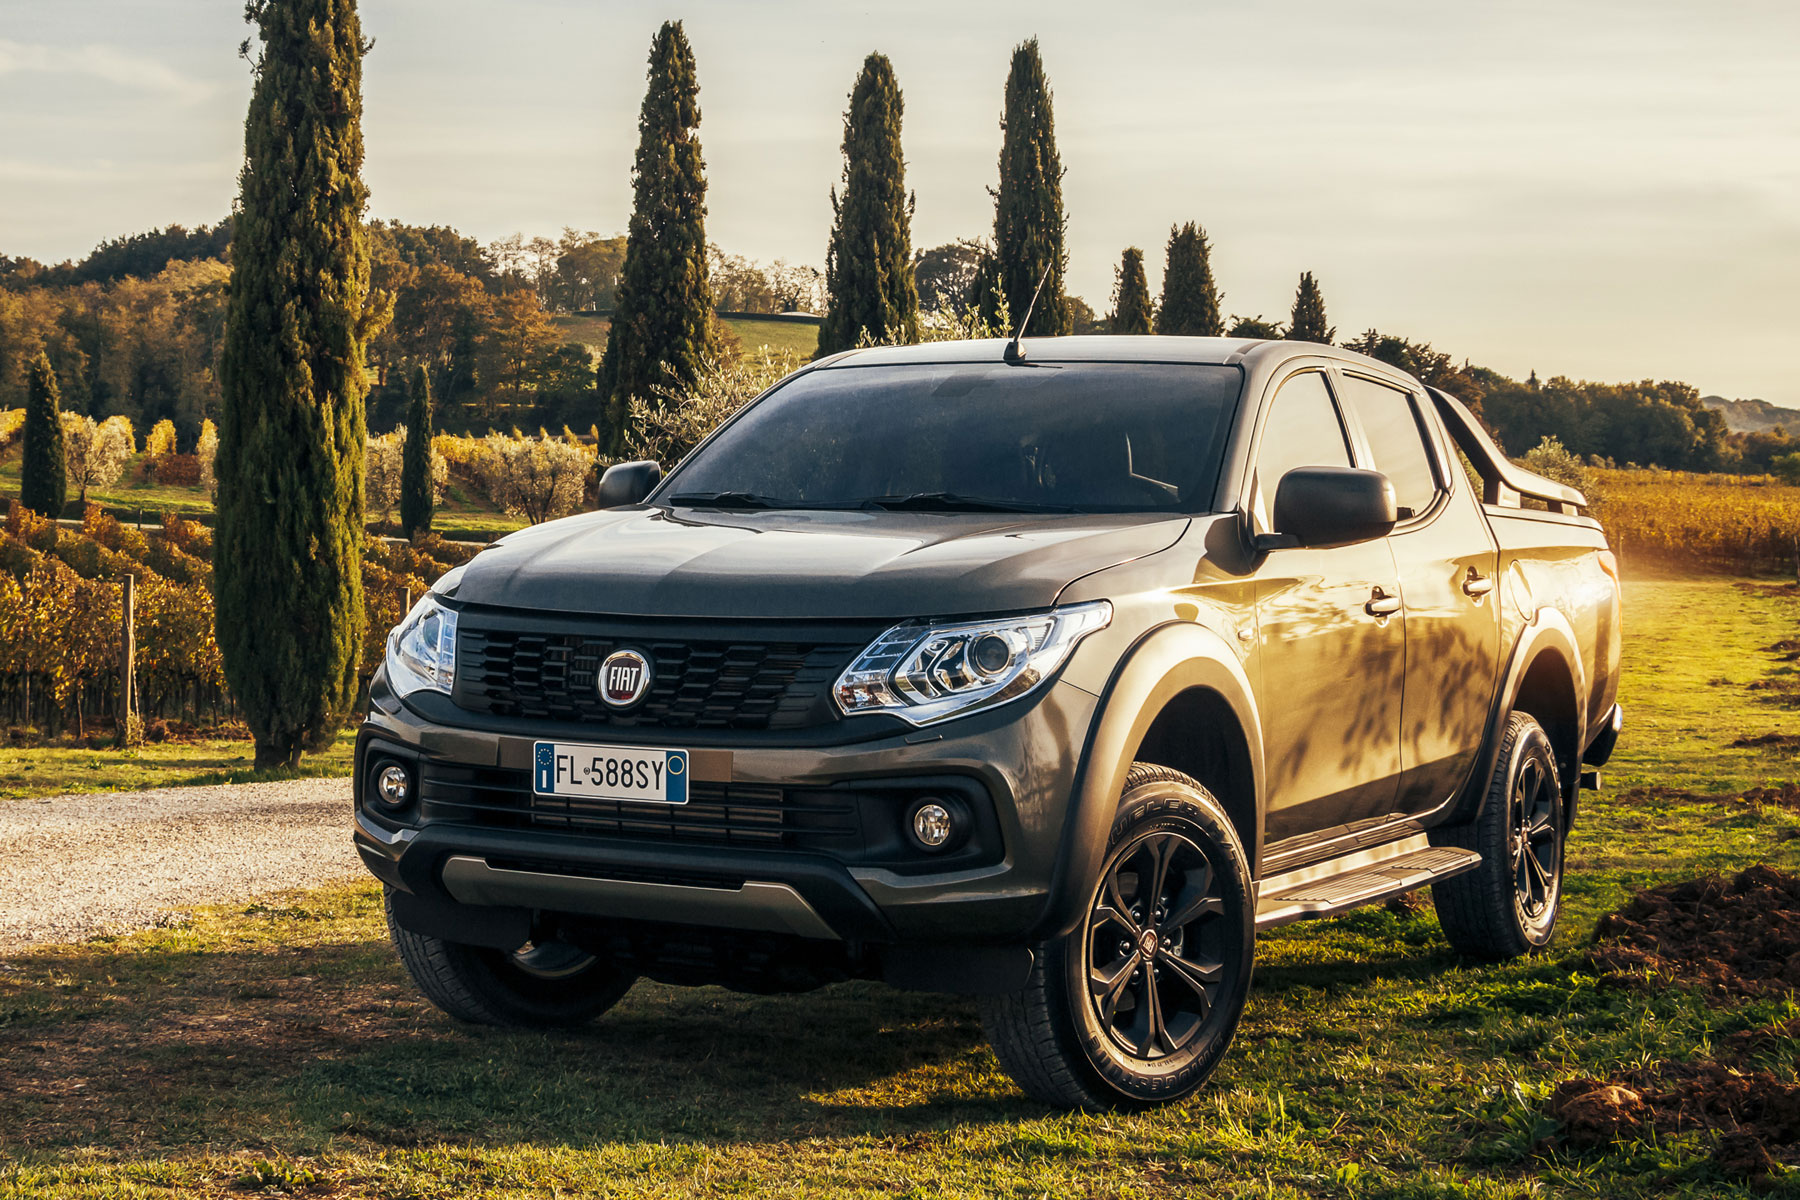 fiat fullback 2 4 180bhp cross double cab pick up auto road test parkers. Black Bedroom Furniture Sets. Home Design Ideas